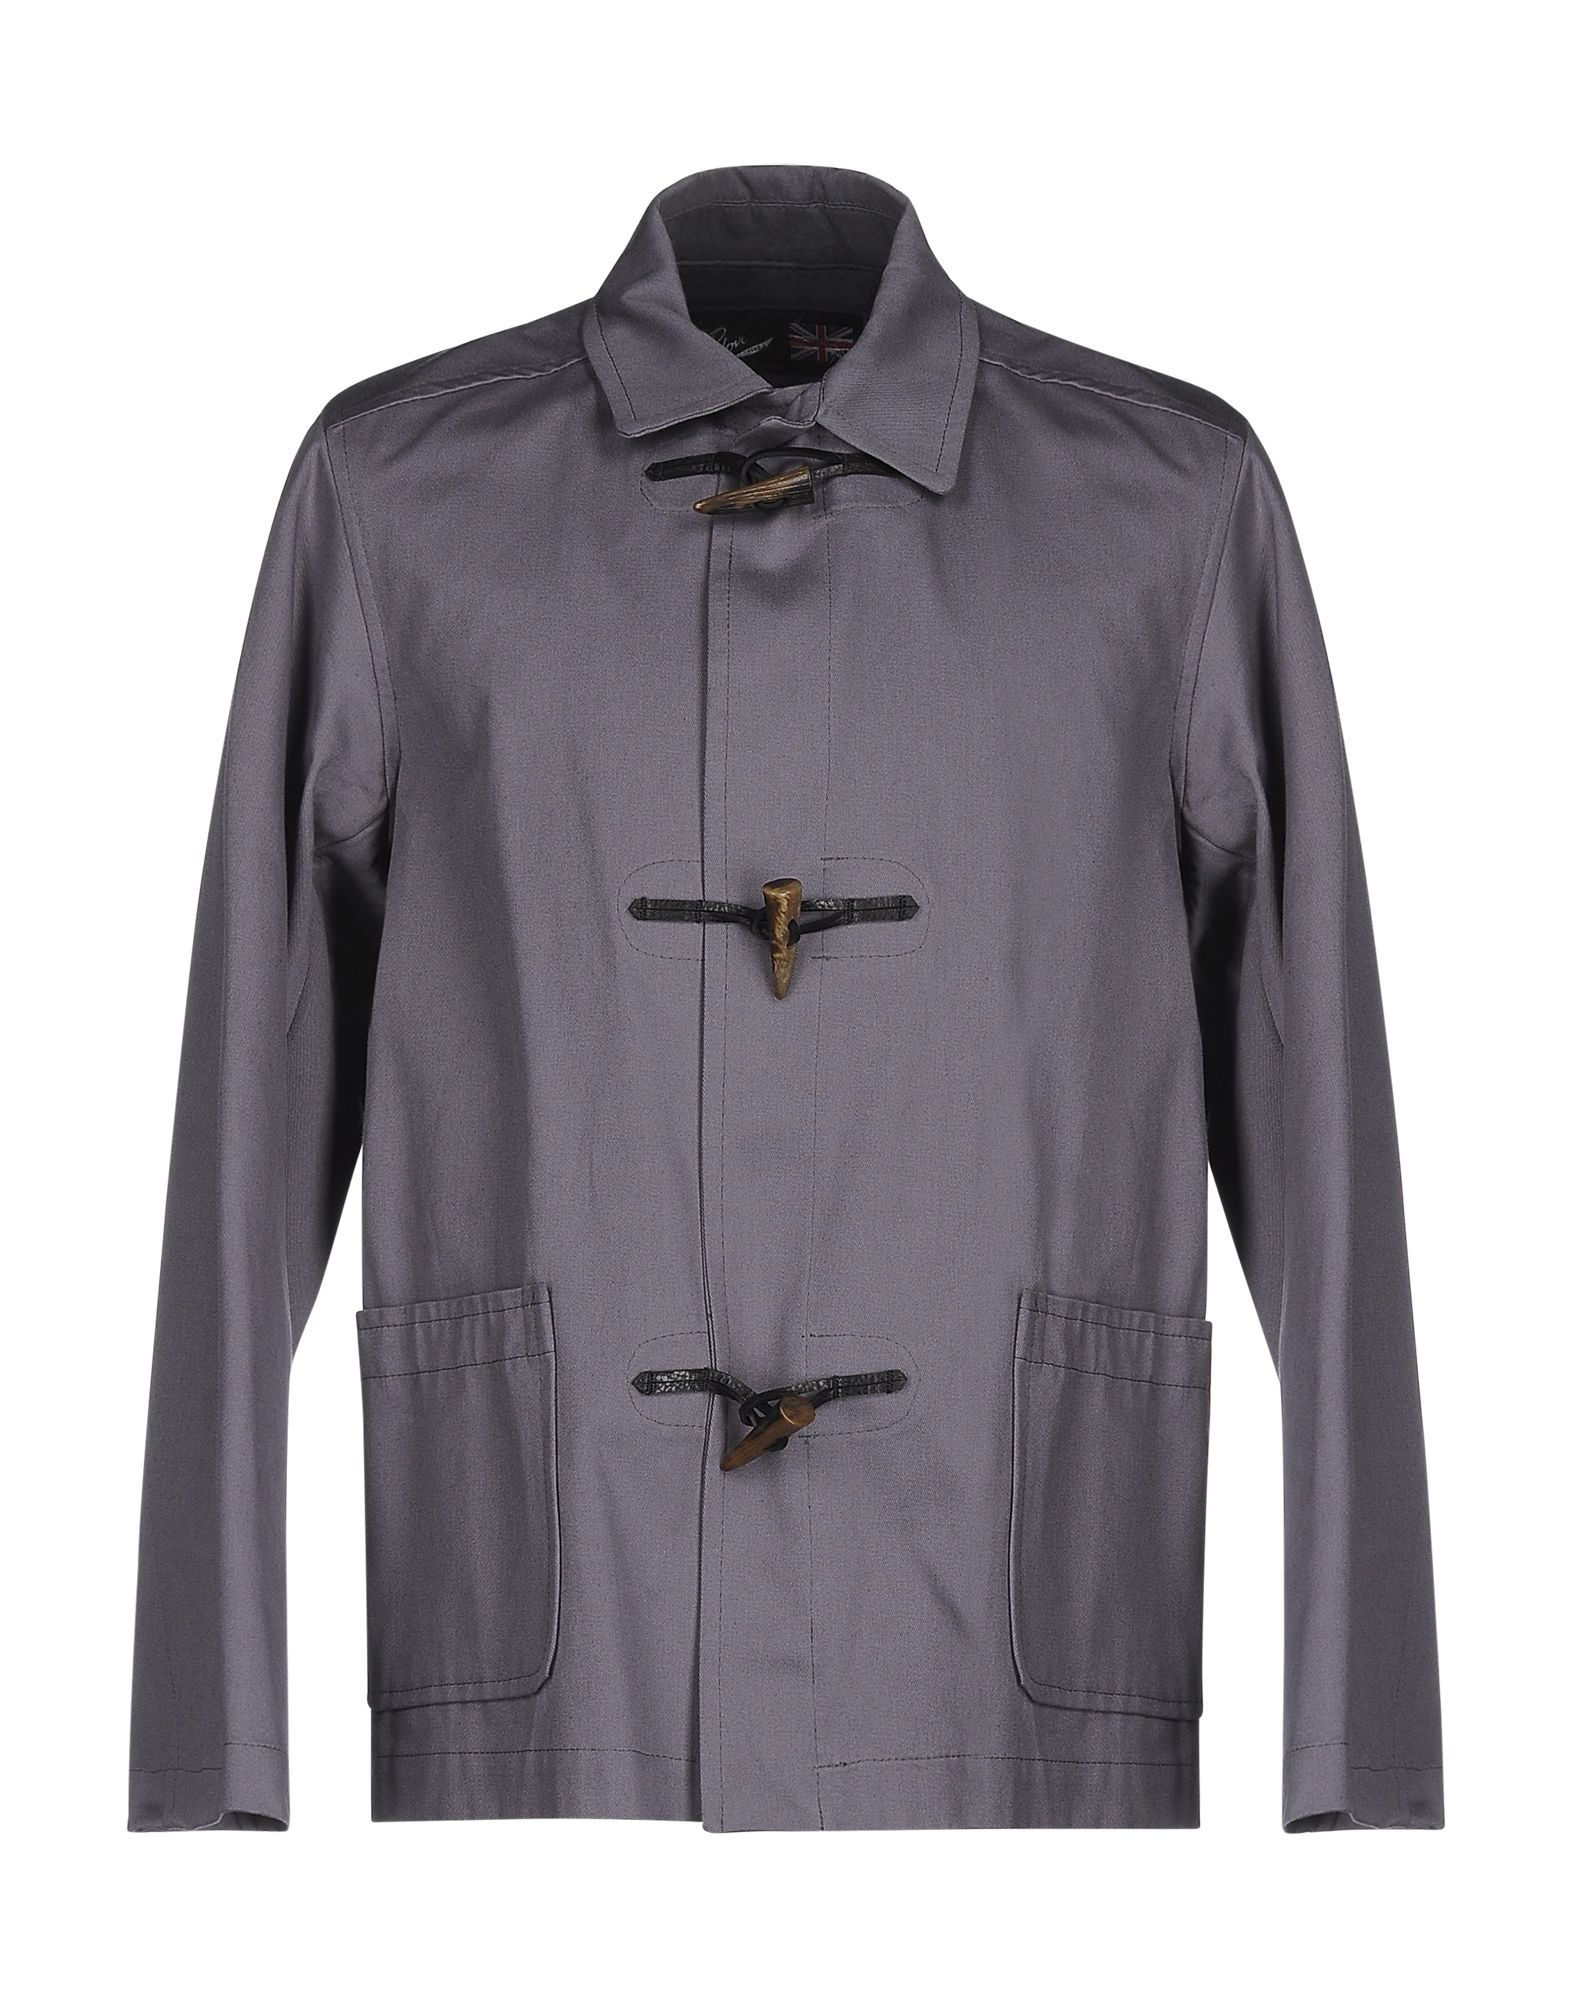 GLOVERALL Jacket in Grey